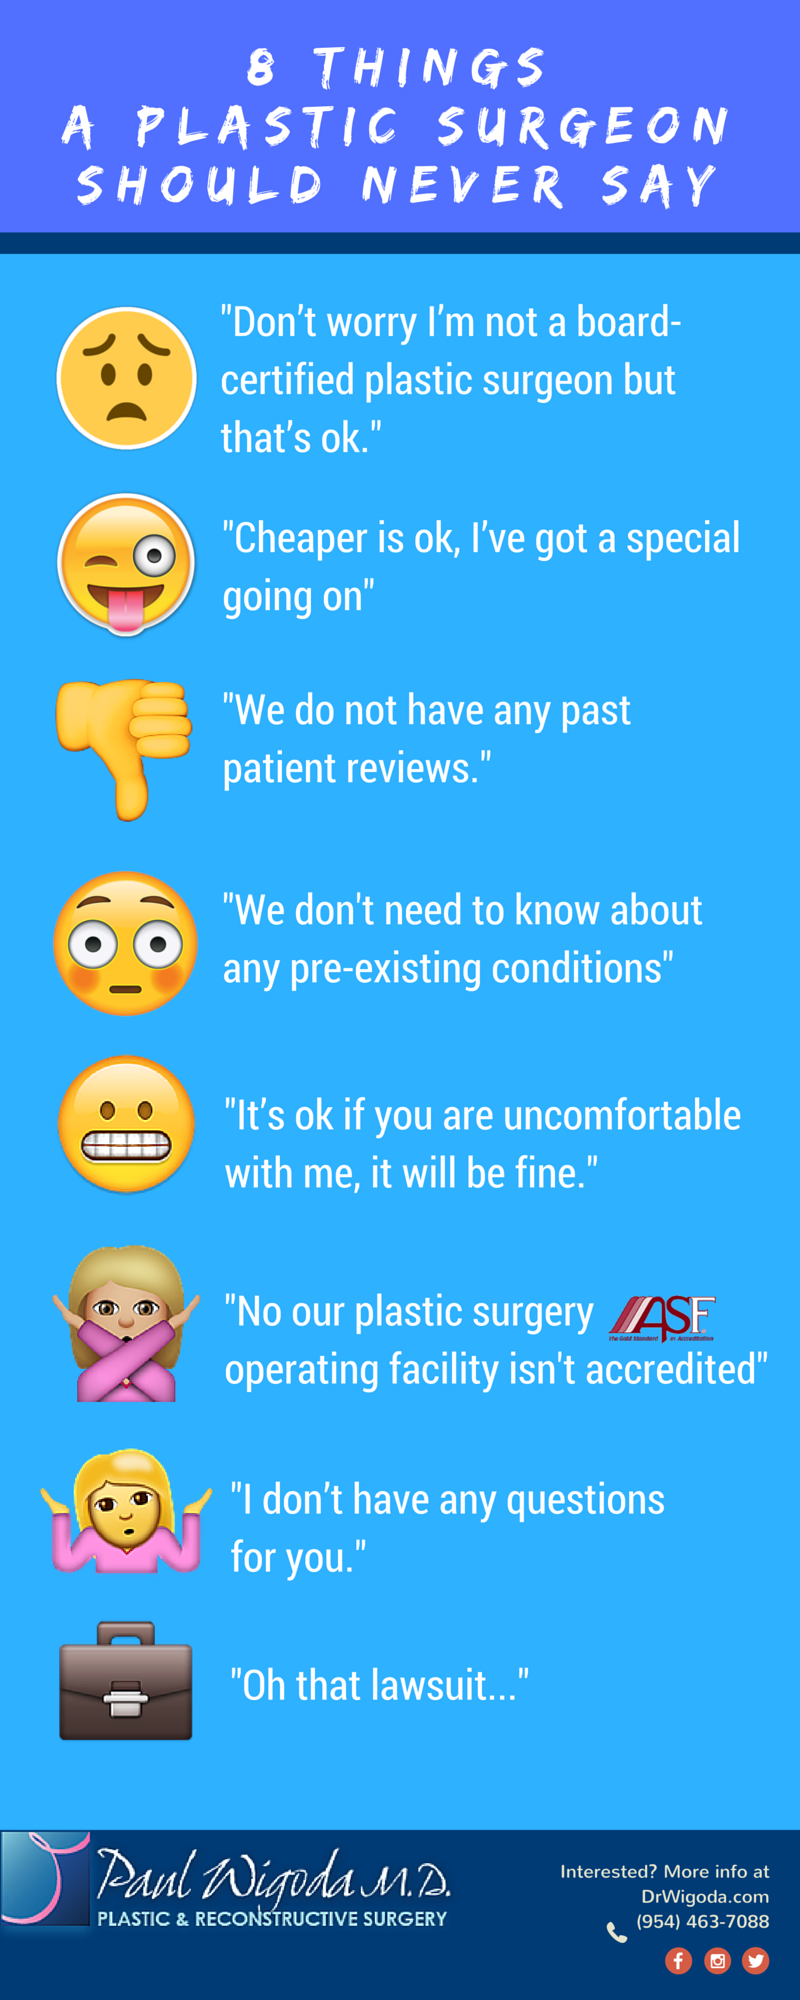 8 Things Your Plastic Surgeon Should Never Say To You